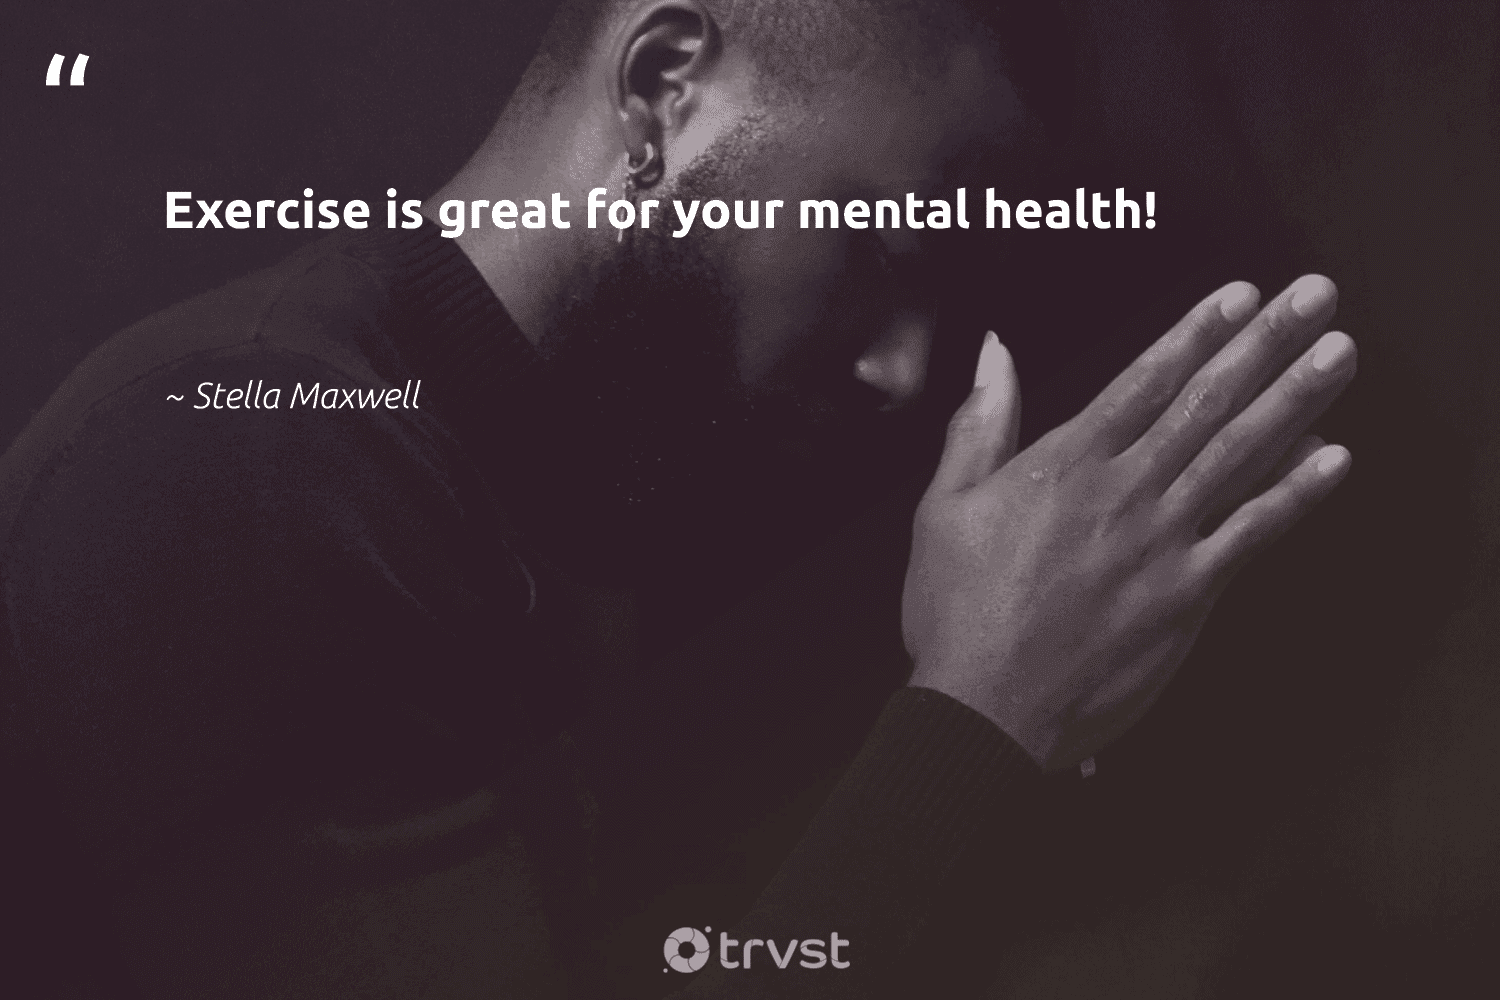 """""""Exercise is great for your mental health!""""  - Stella Maxwell #trvst #quotes #fitness #exercise #health #begreat #collectiveaction #fitnessgoals #mindset #togetherwecan #dotherightthing #bodypositive"""